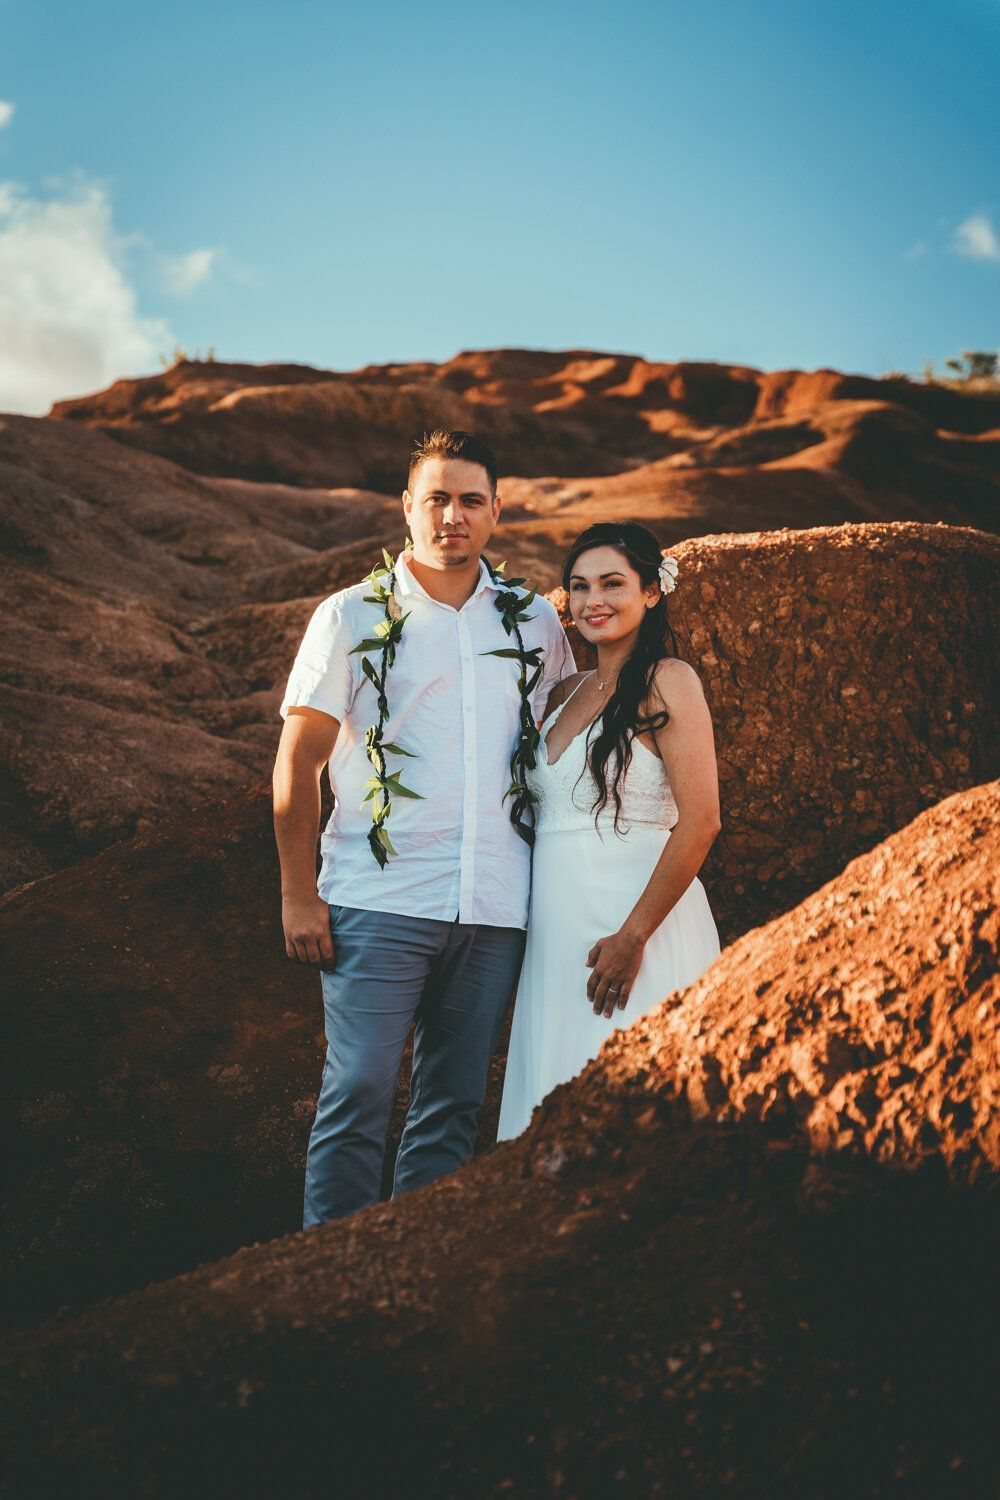 Waimea Canyon photography Kauai Hawaii. Perfect location for a couple photo shoot or elopement for a look very different than the rest of the island. Great chic photo inspiration for couples looking to elope in Kauai or in Hawaii. Booka Hawaii elopement or couple session with Ikaika Photography available at ikaika.photo. Romance, romantic, weddings, elopement, intimate weddings, engagement, proposal, love, amore, Kauai, Oahu, Maui, Big Island, Kauai weddings, Hawaii weddings, Hawaii Elopements